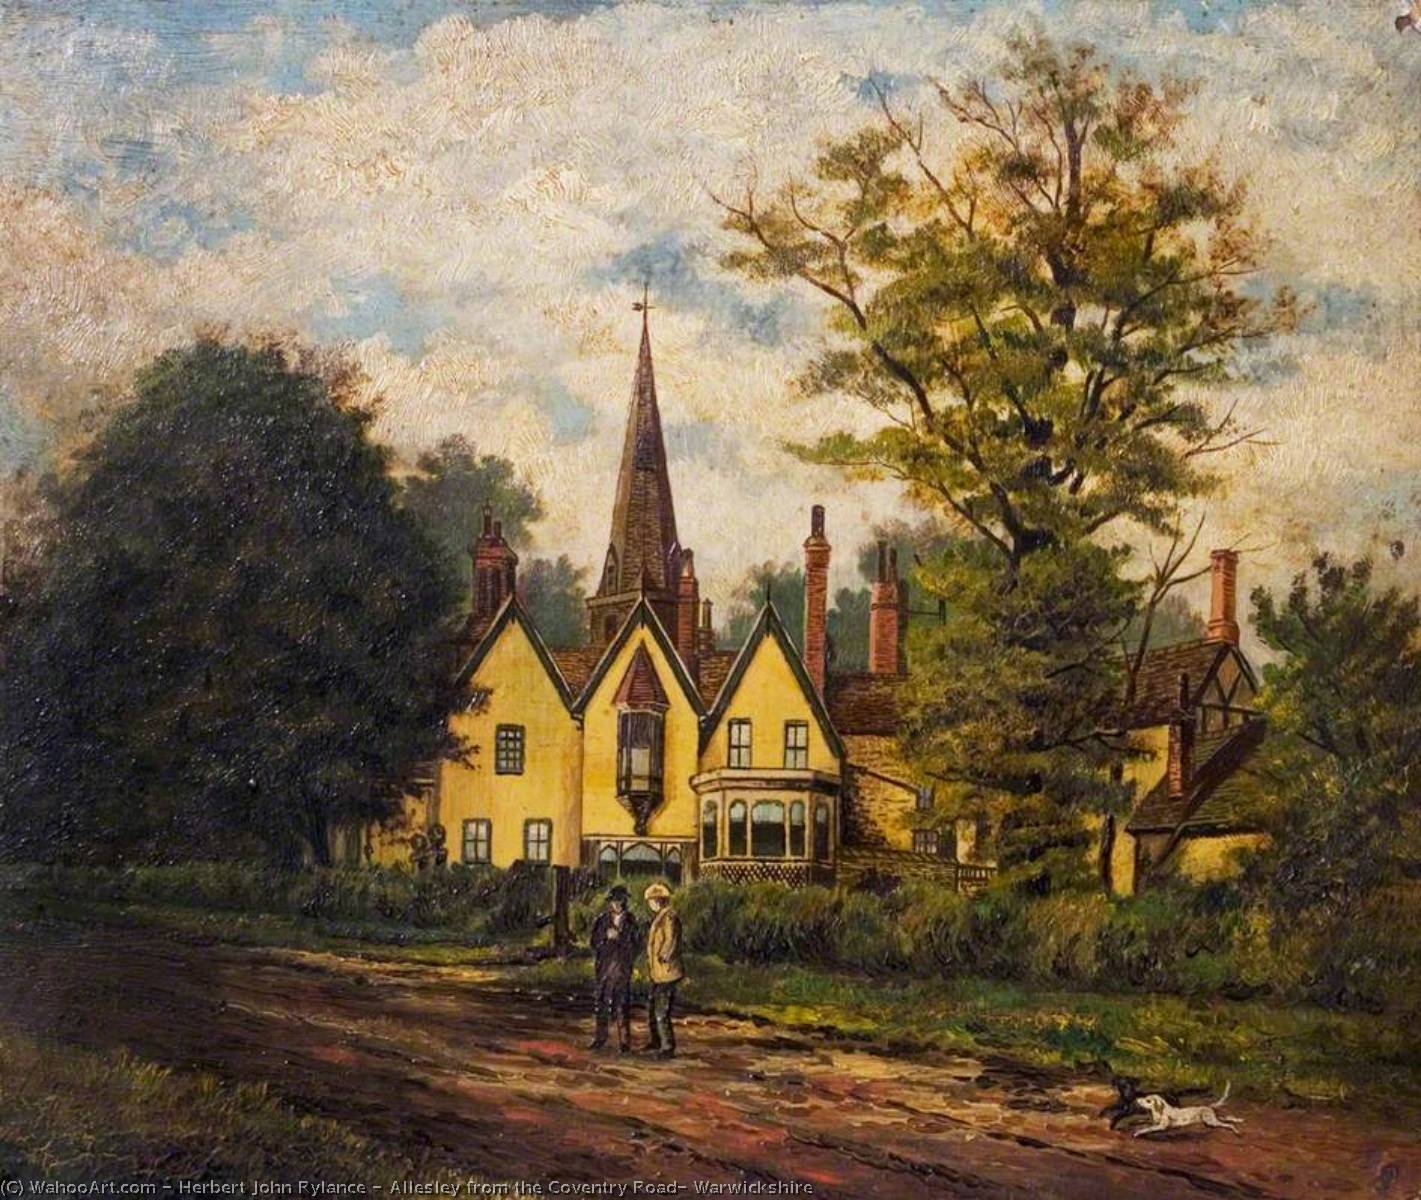 Allesley from the Coventry Road, Warwickshire, 1890 by Herbert John Rylance | Museum Quality Reproductions | WahooArt.com